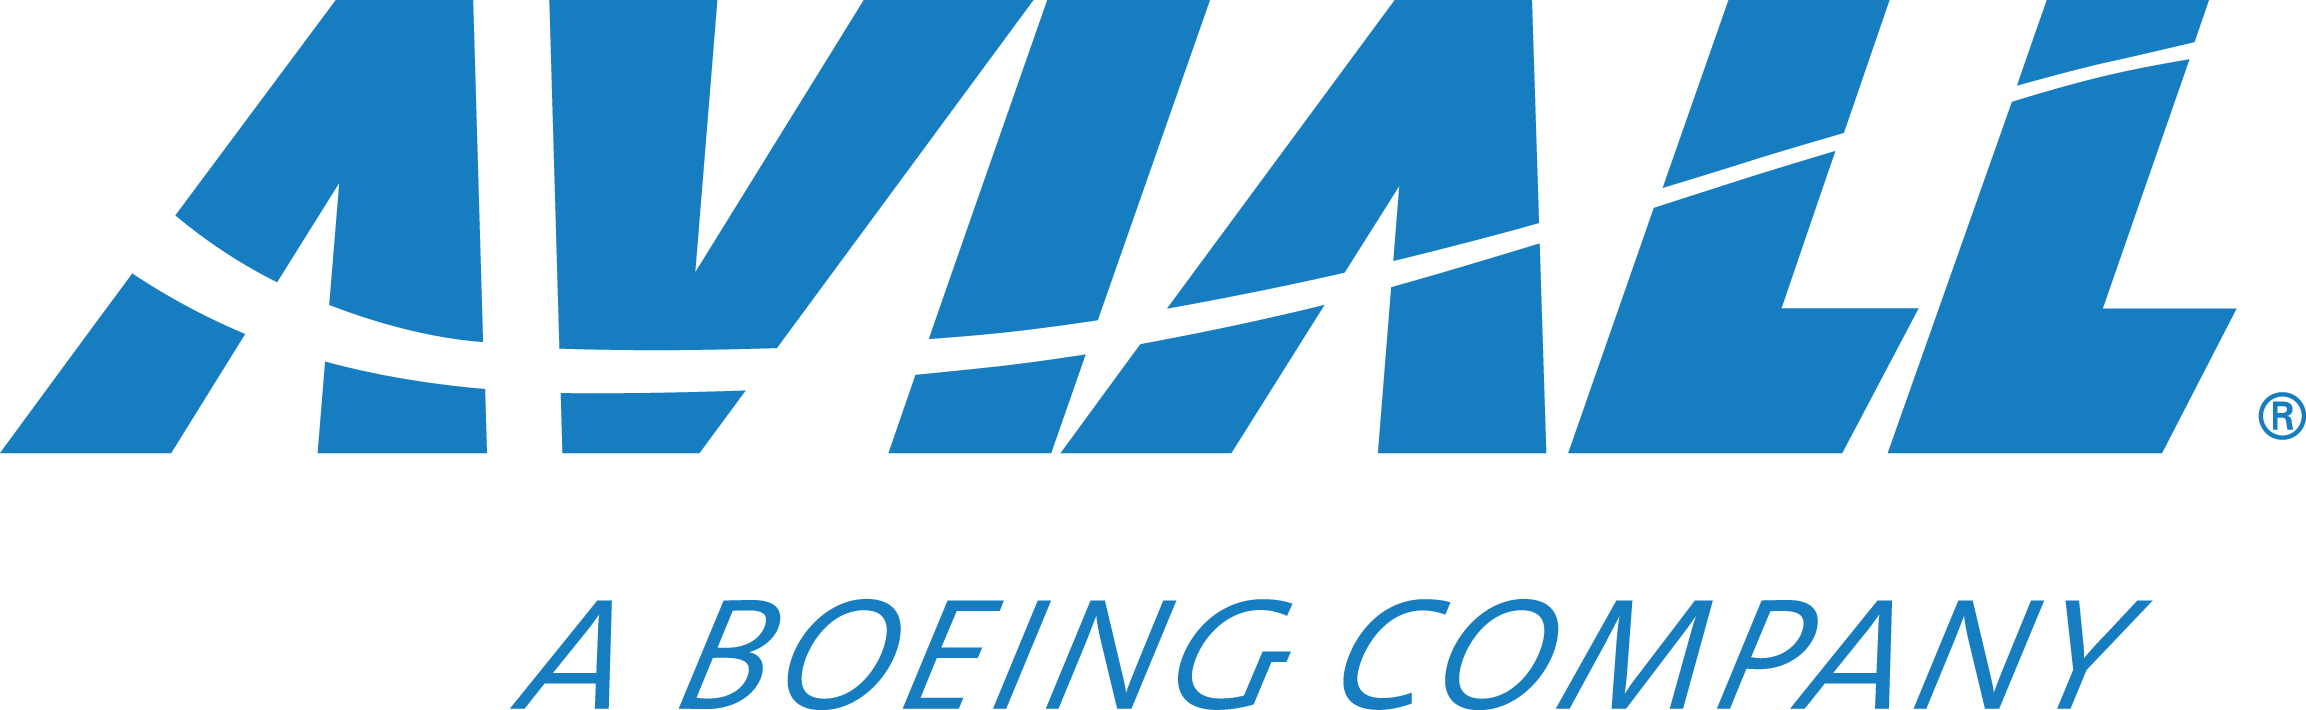 Aviall A Boeing Company Kell-Strom Tool Co. Inc. Global Distributor